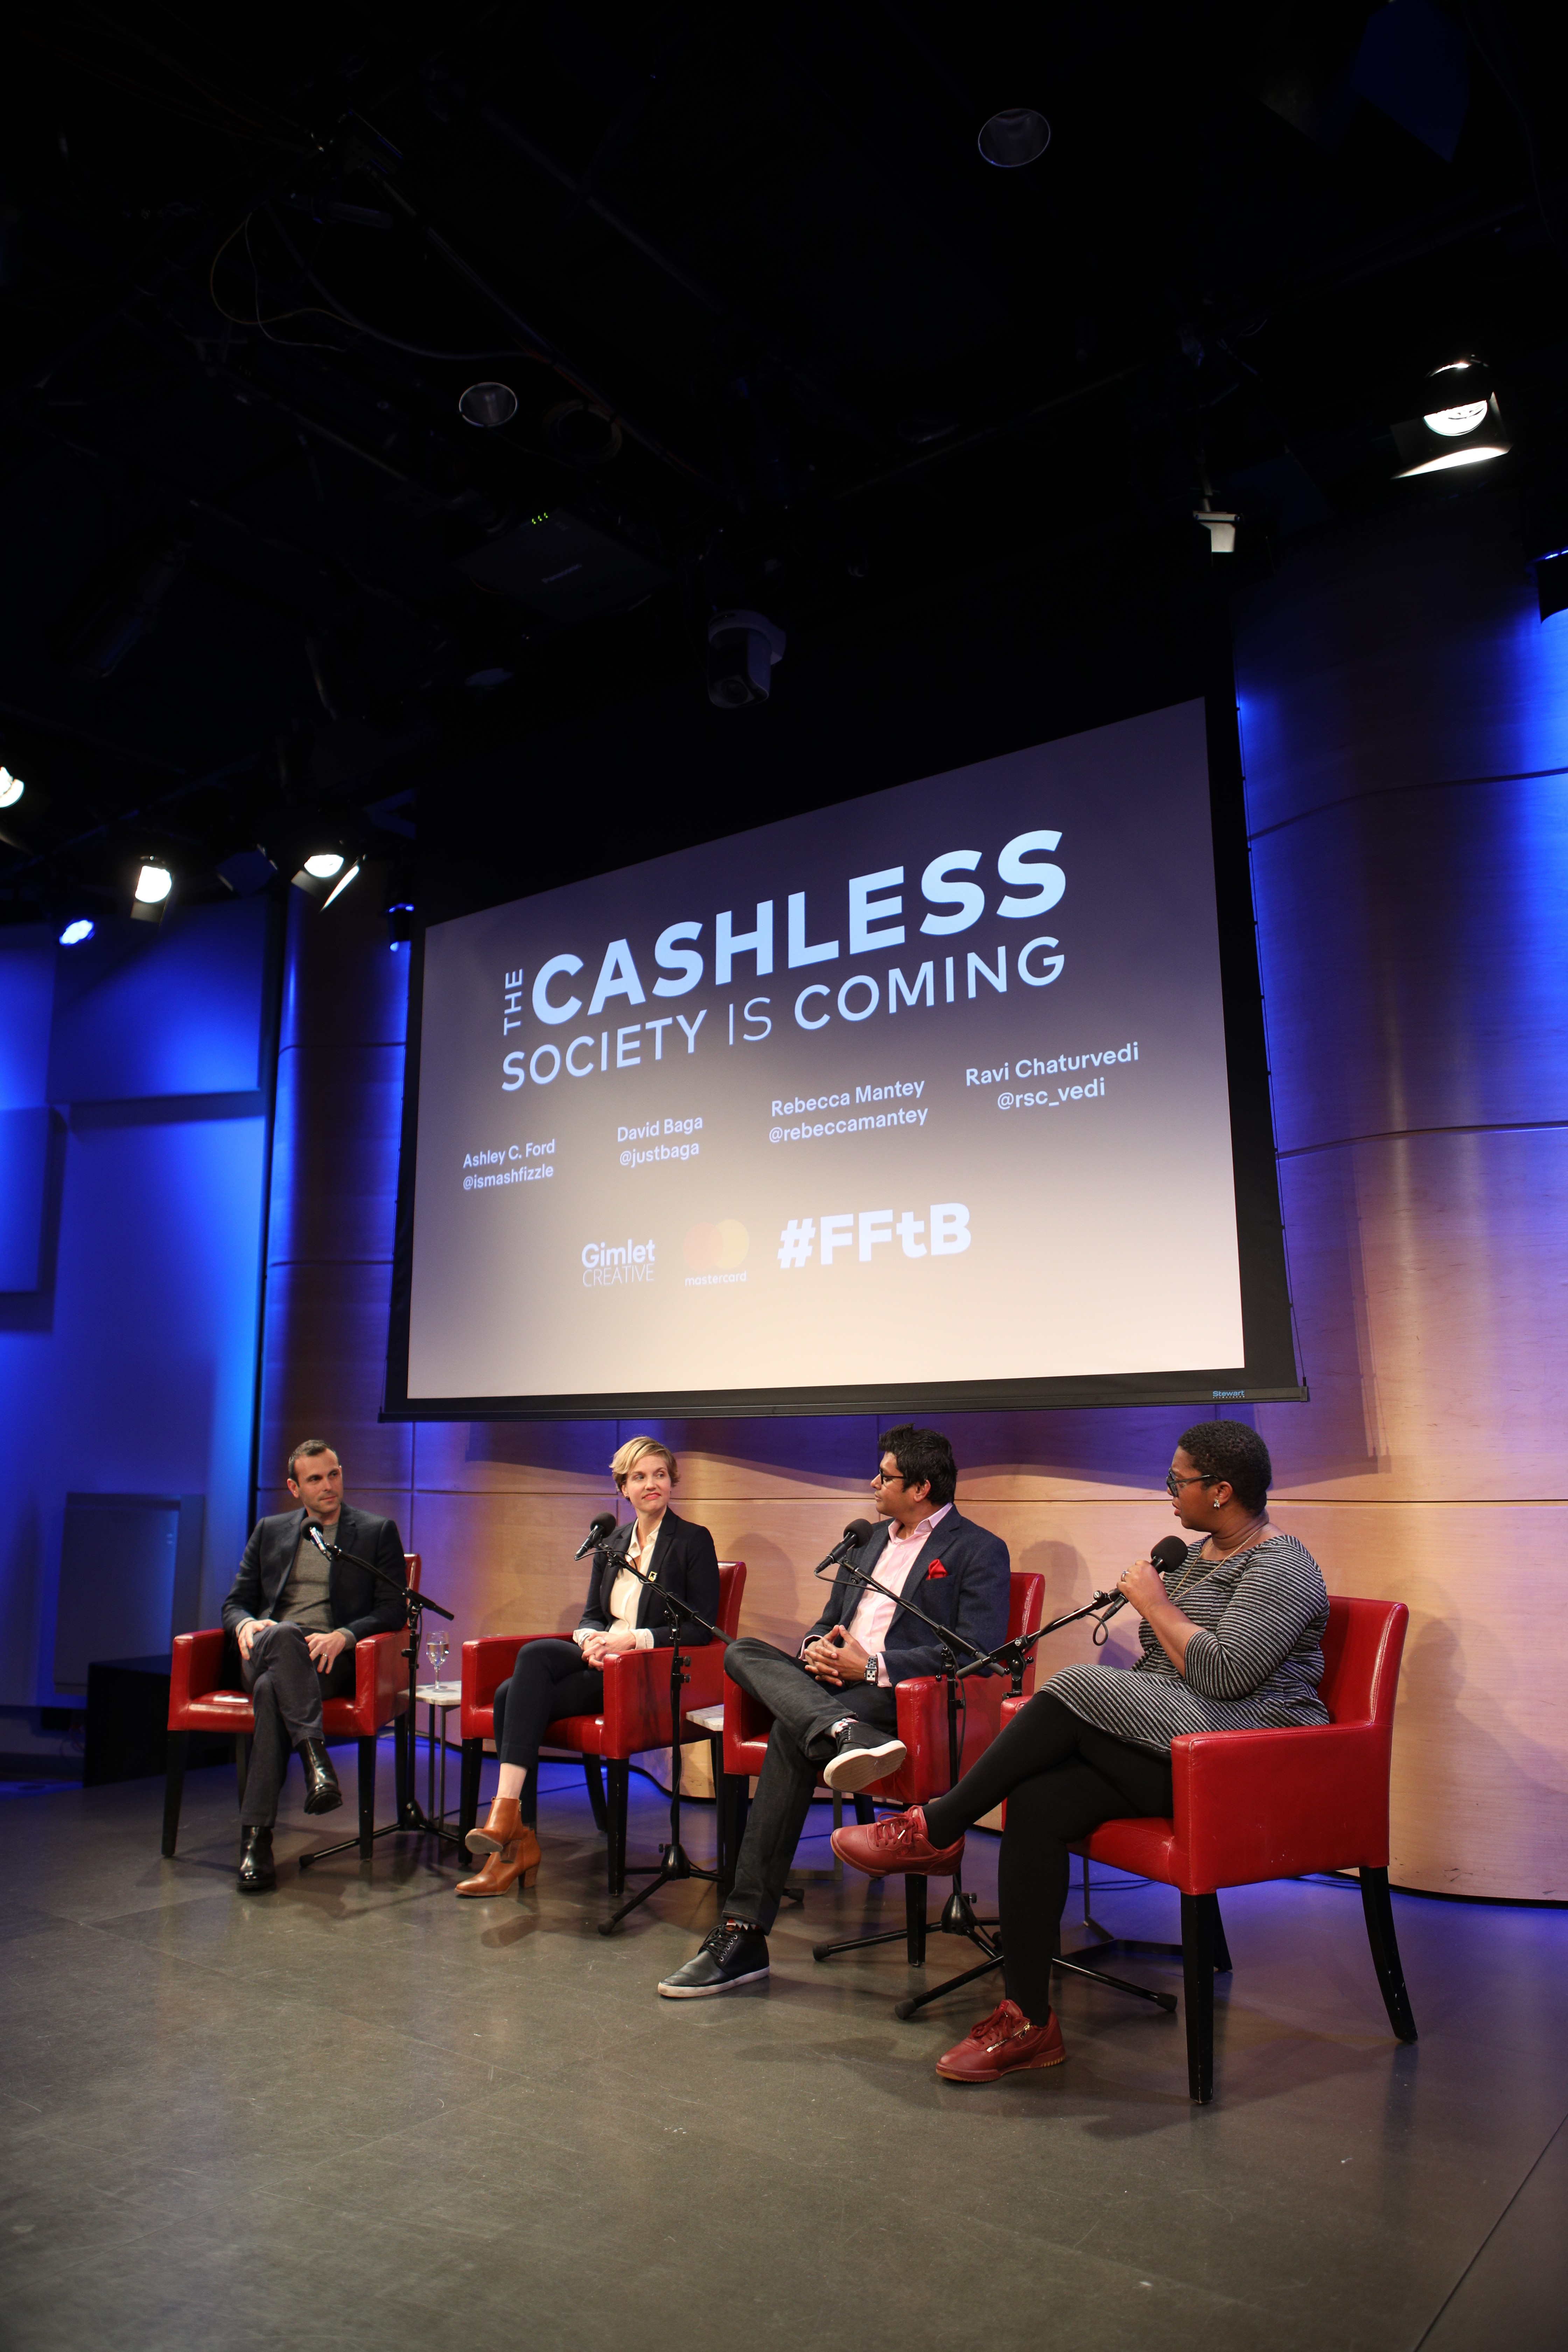 A Cashless Society is Coming